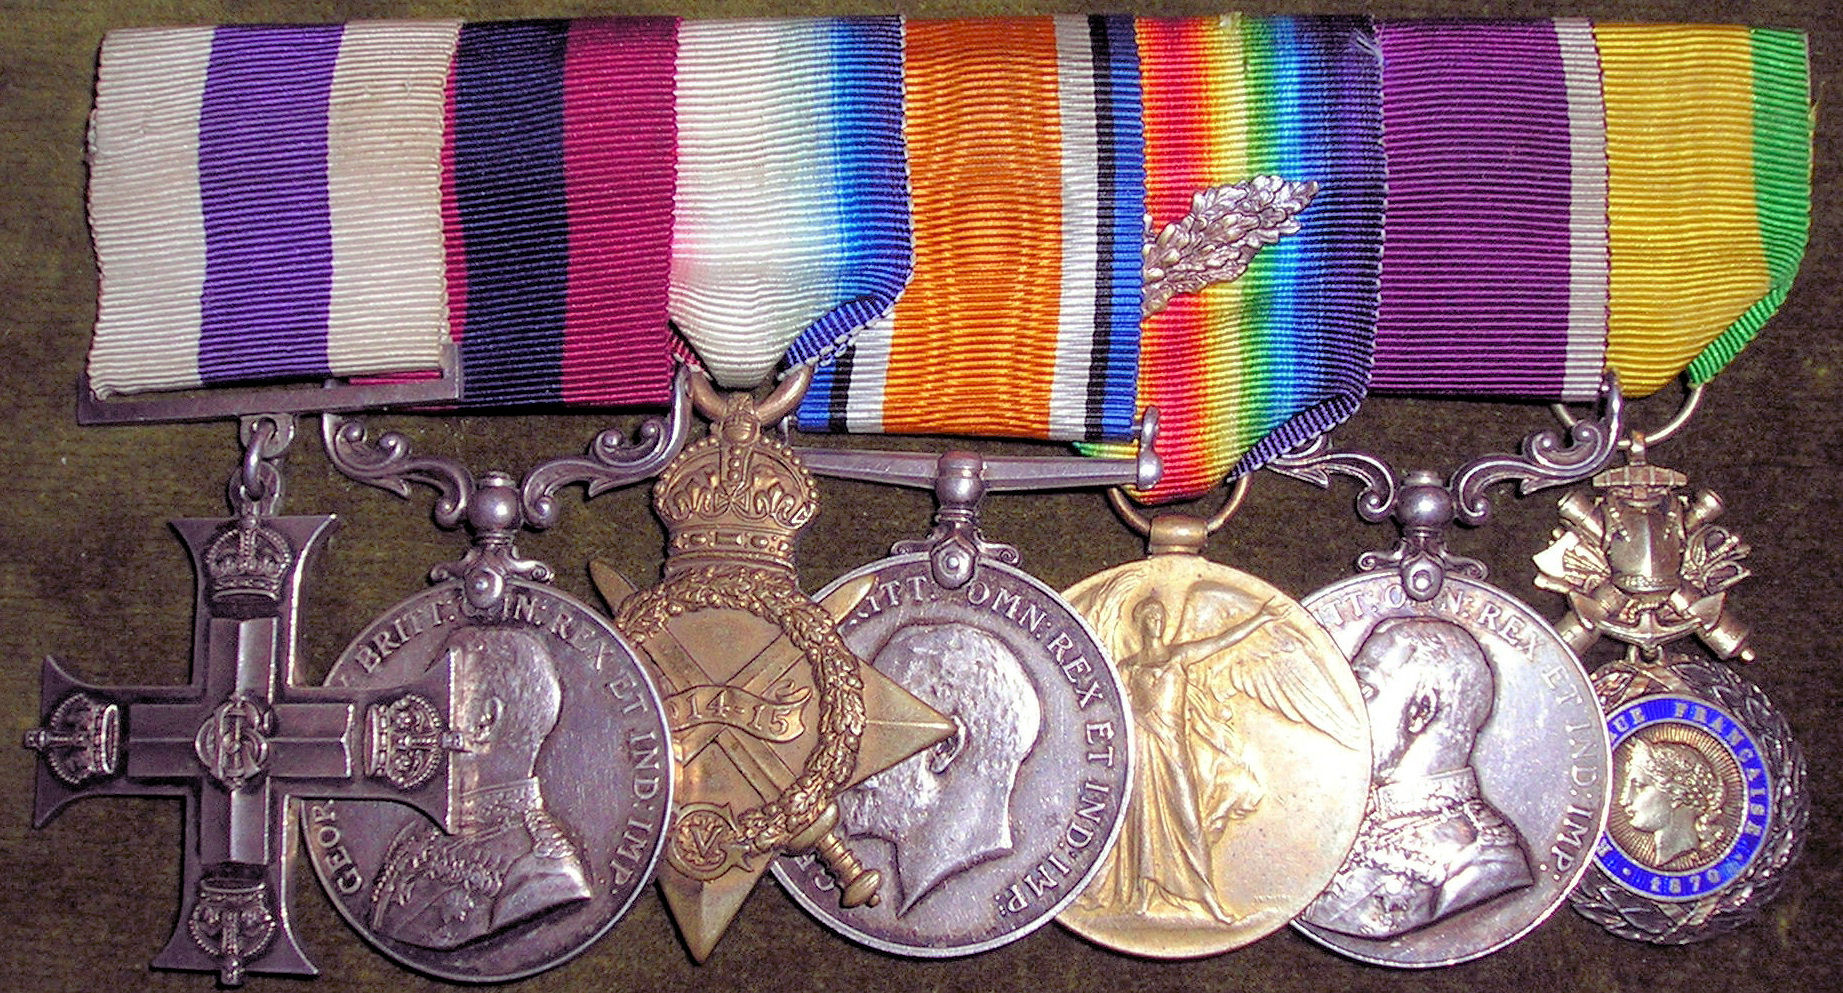 Wakefield / outwood Medal & Militaria Fair